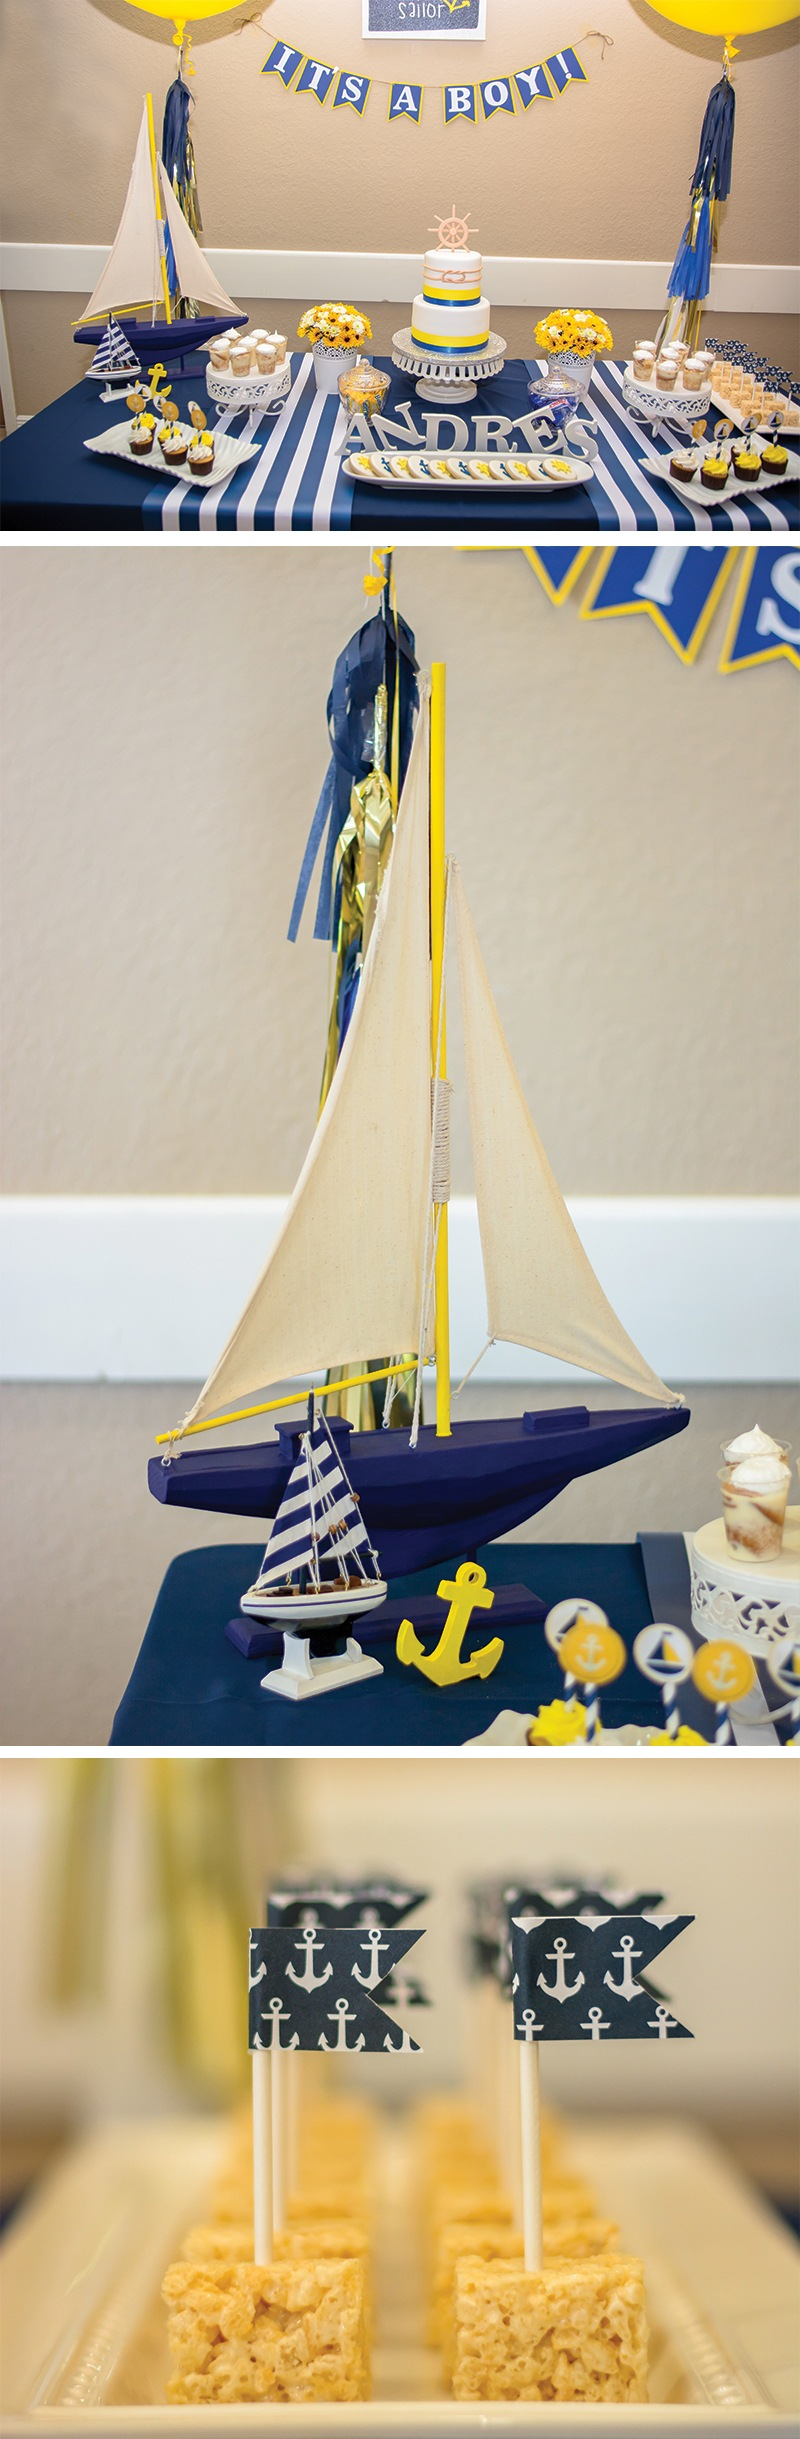 Nautical Baby Shower Theme on Love The Day